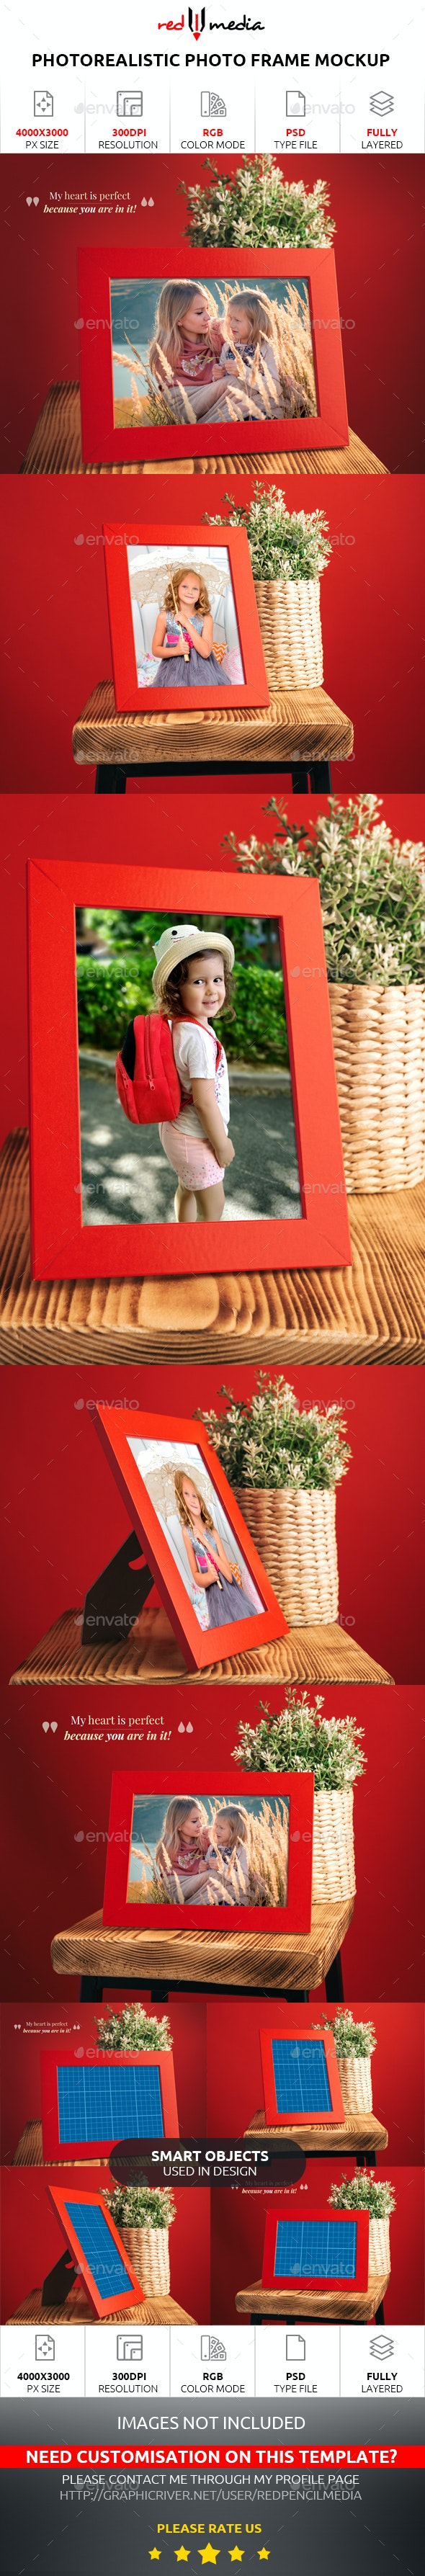 Photorealistic Photo Frame Mockup - Miscellaneous Graphics